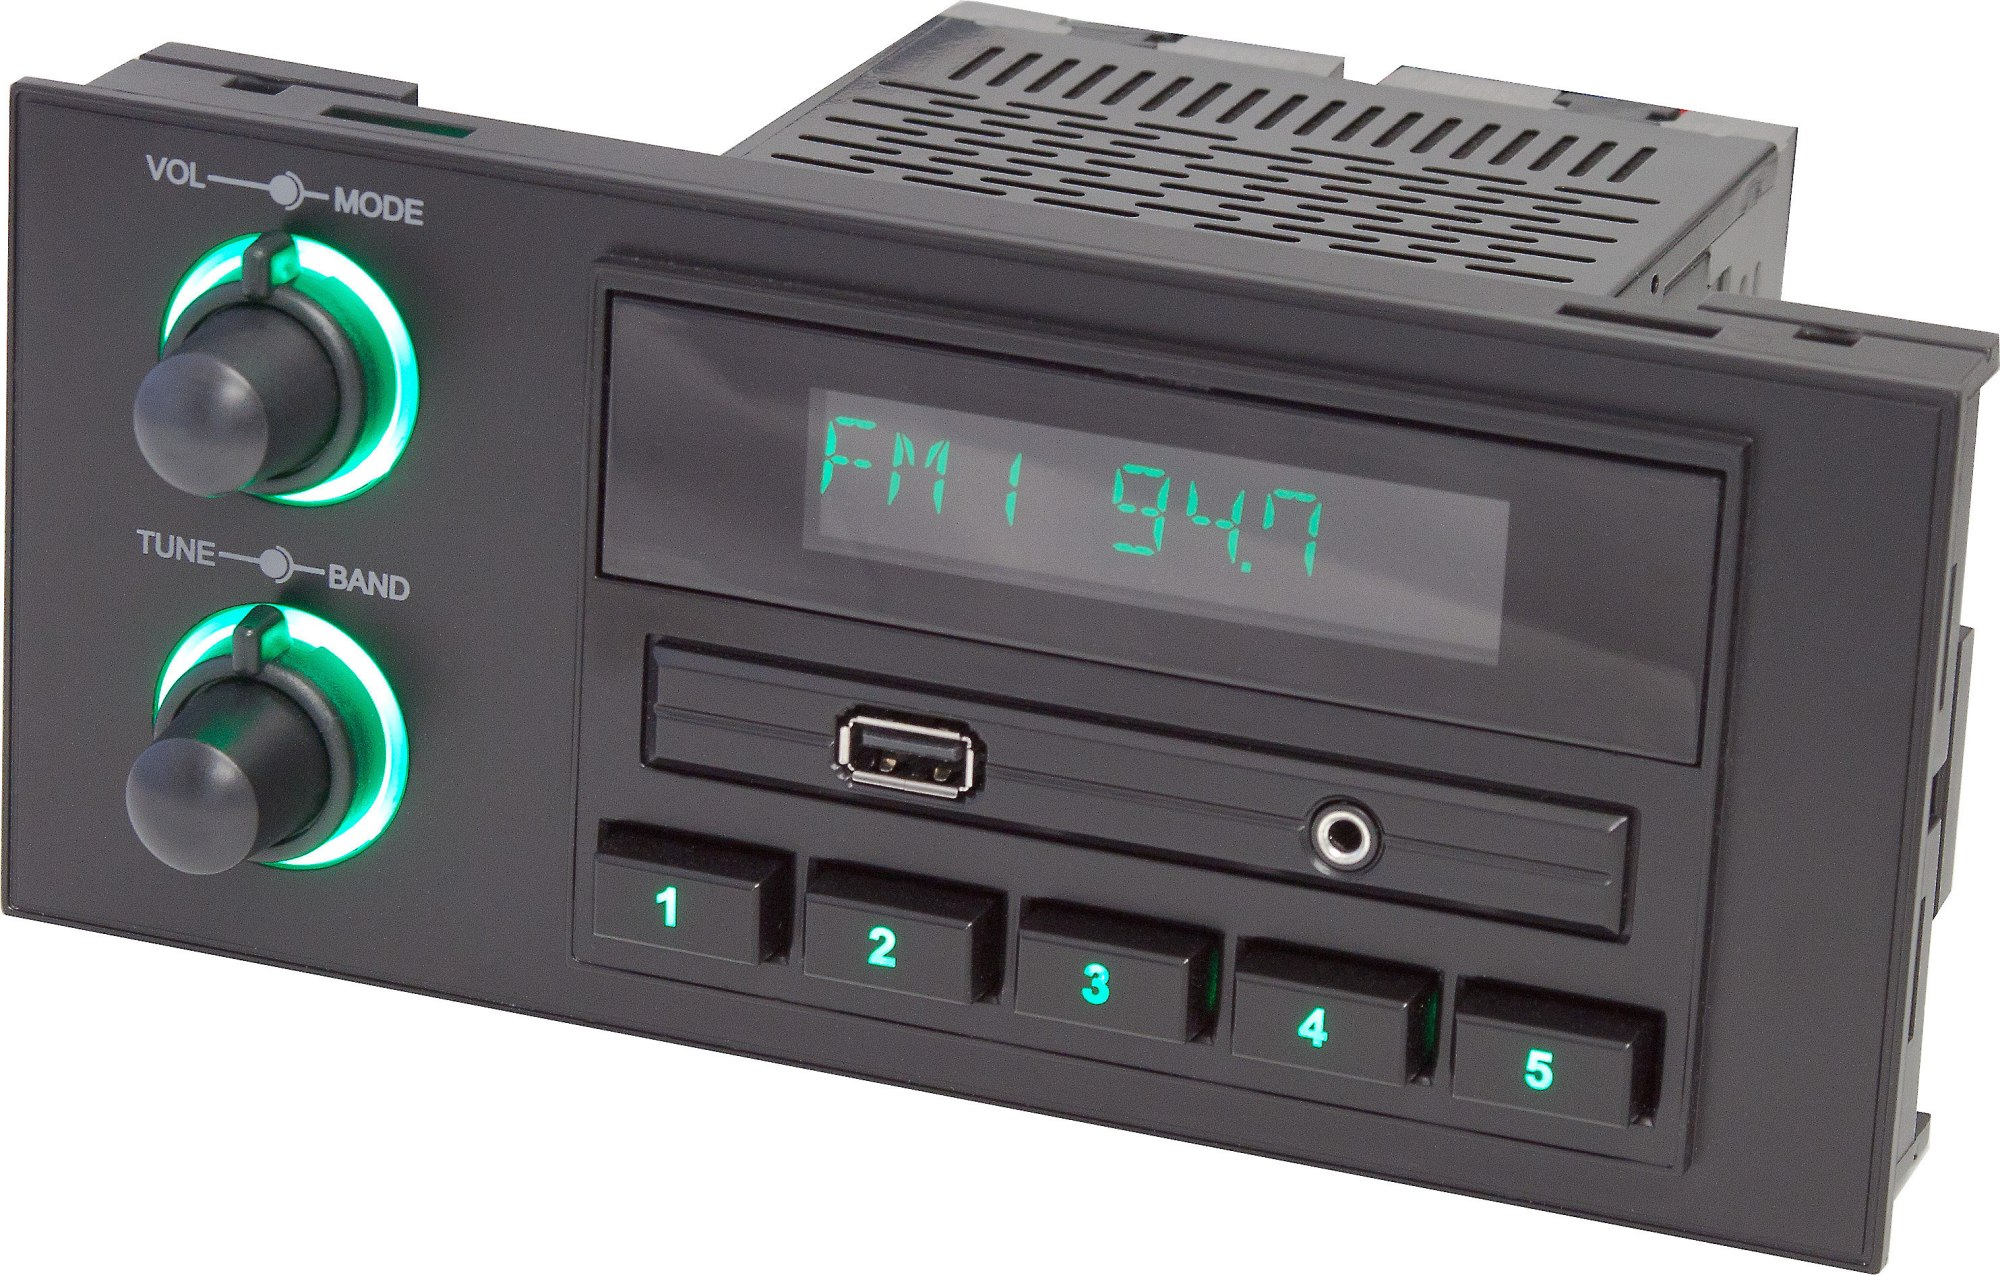 hight resolution of retrosound newport digital media receiver for gm chrysler ford and jeep vehicles with 1 5 din dash openings does not play cds at crutchfield com